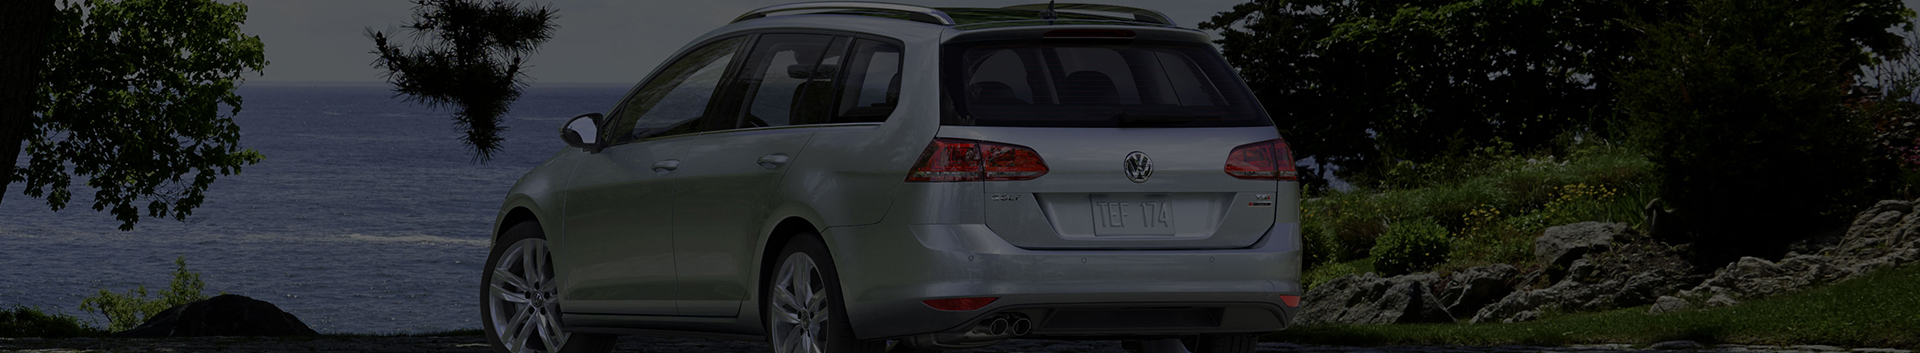 Protection Plus at Volkswagen St. John's